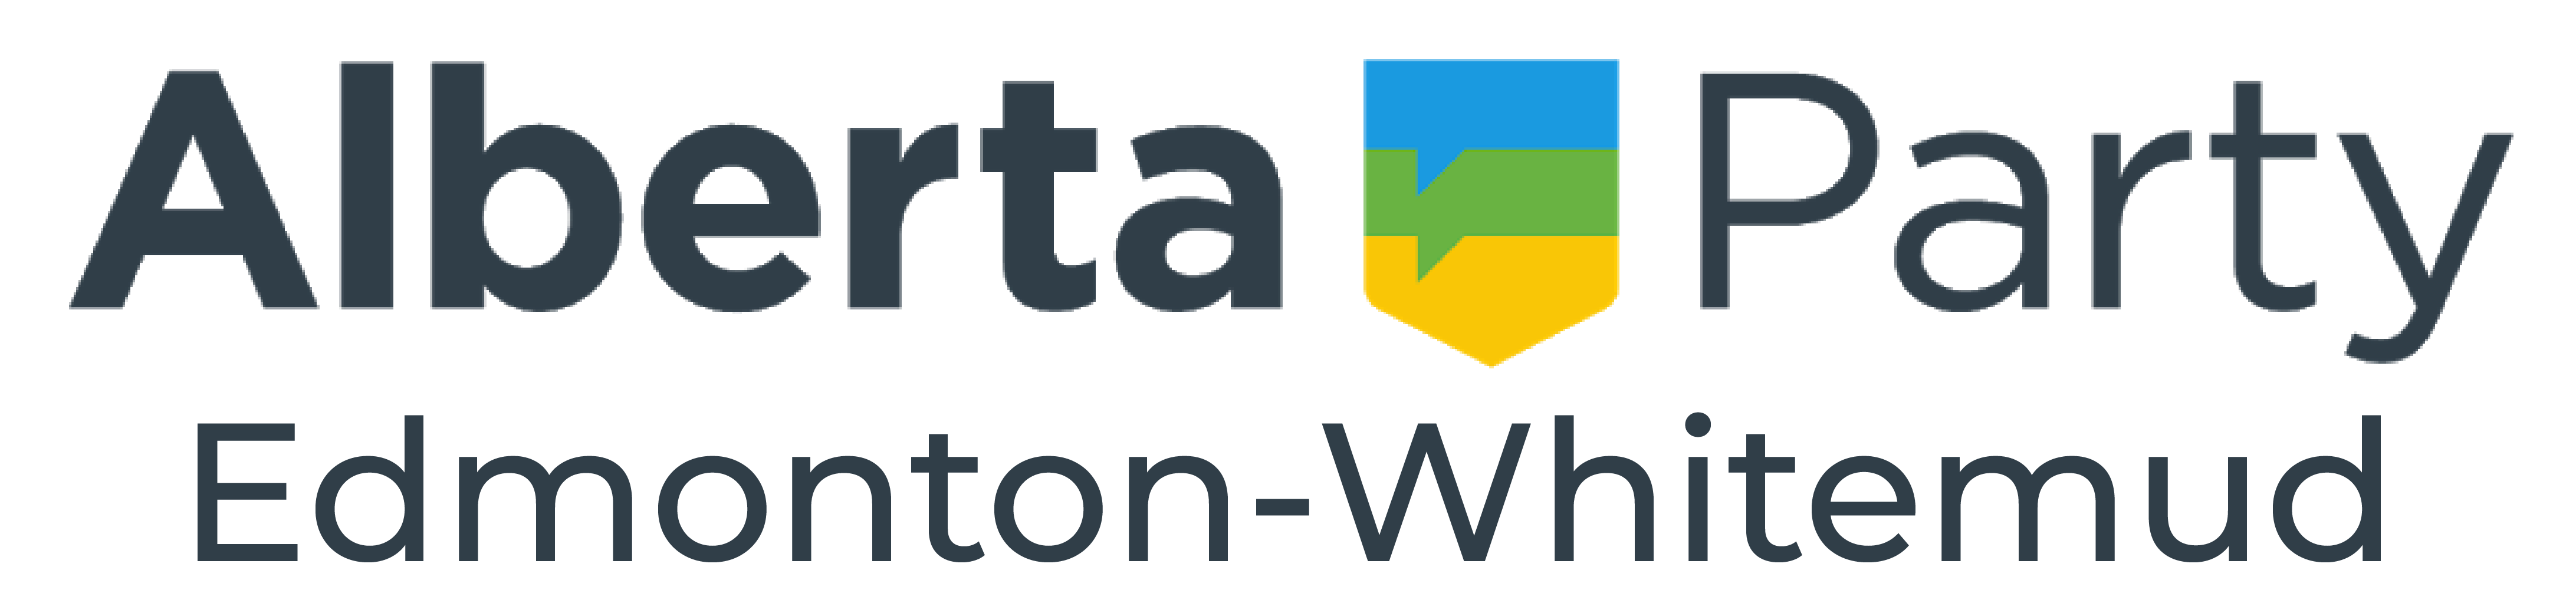 Alberta Party | Edmonton-Whitemud